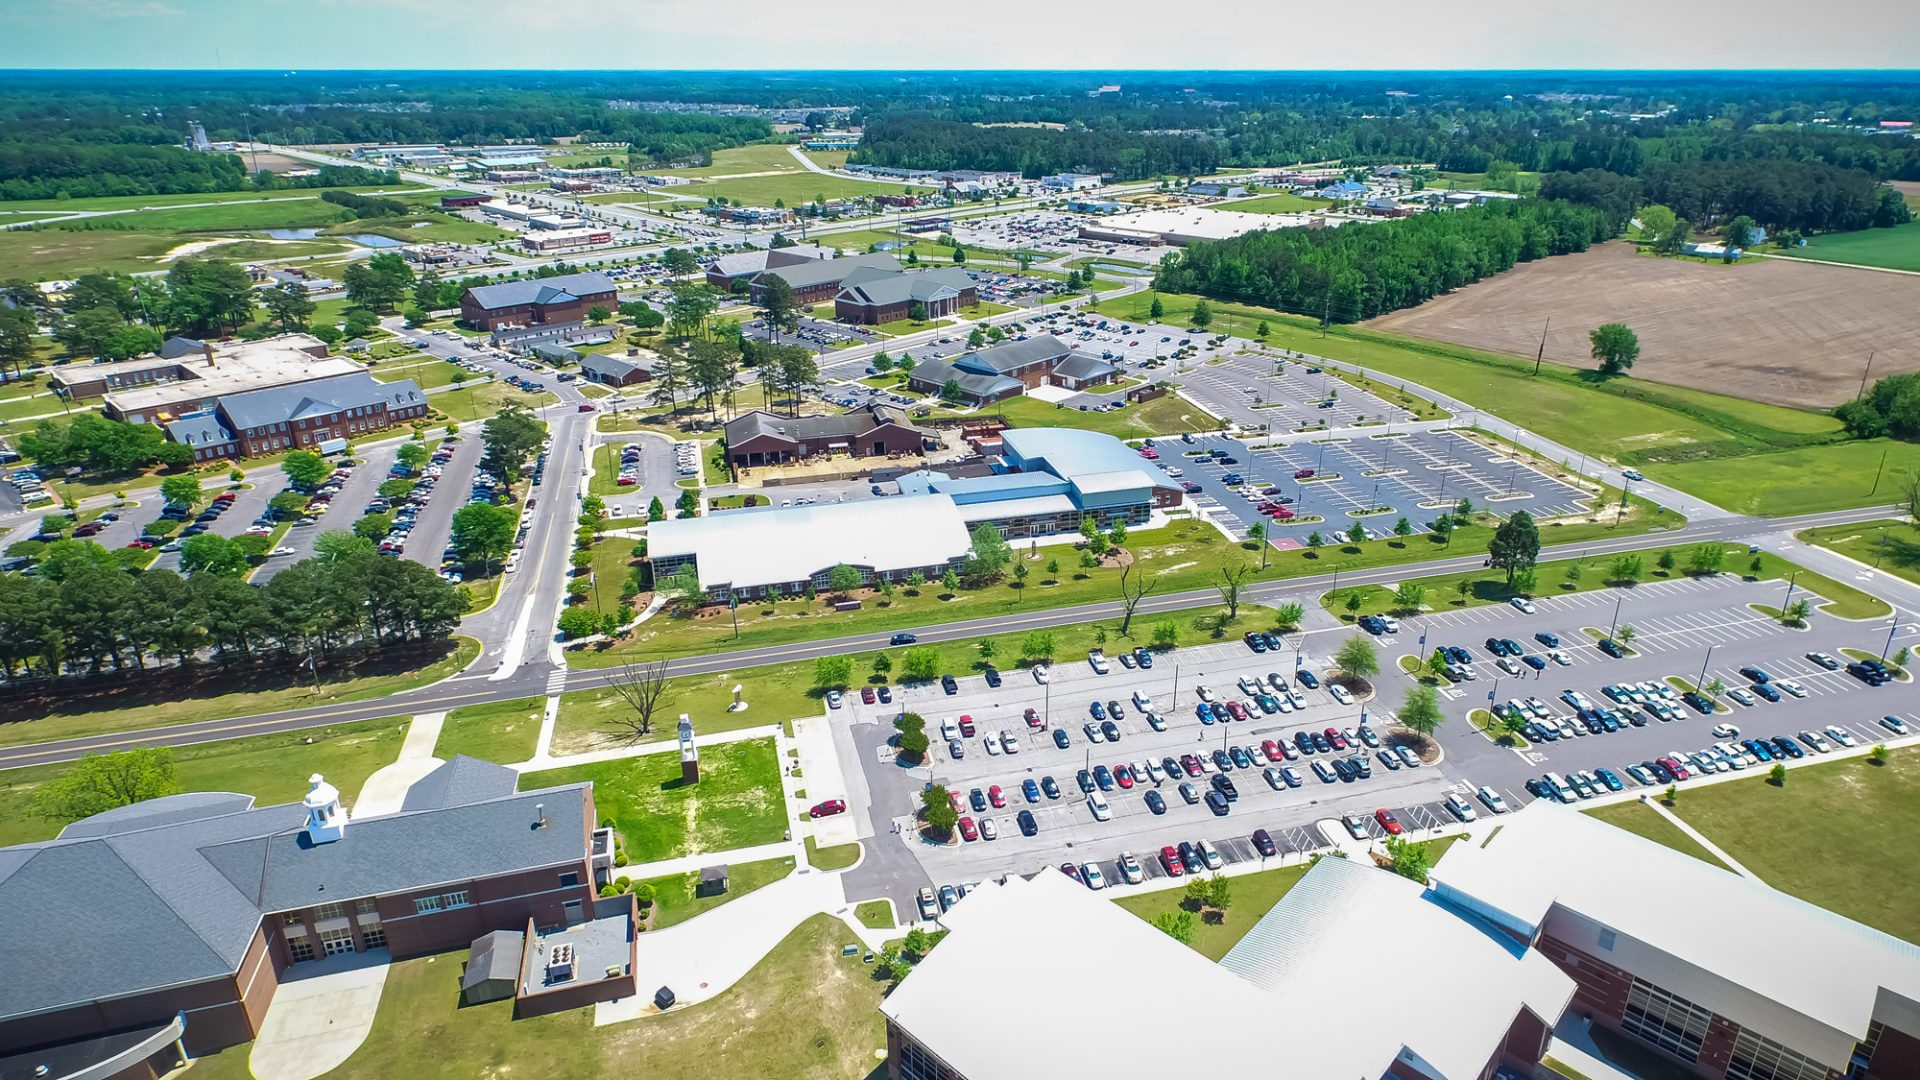 Aerial photo of PCC campus on a bright, sunny day (circa 2017).